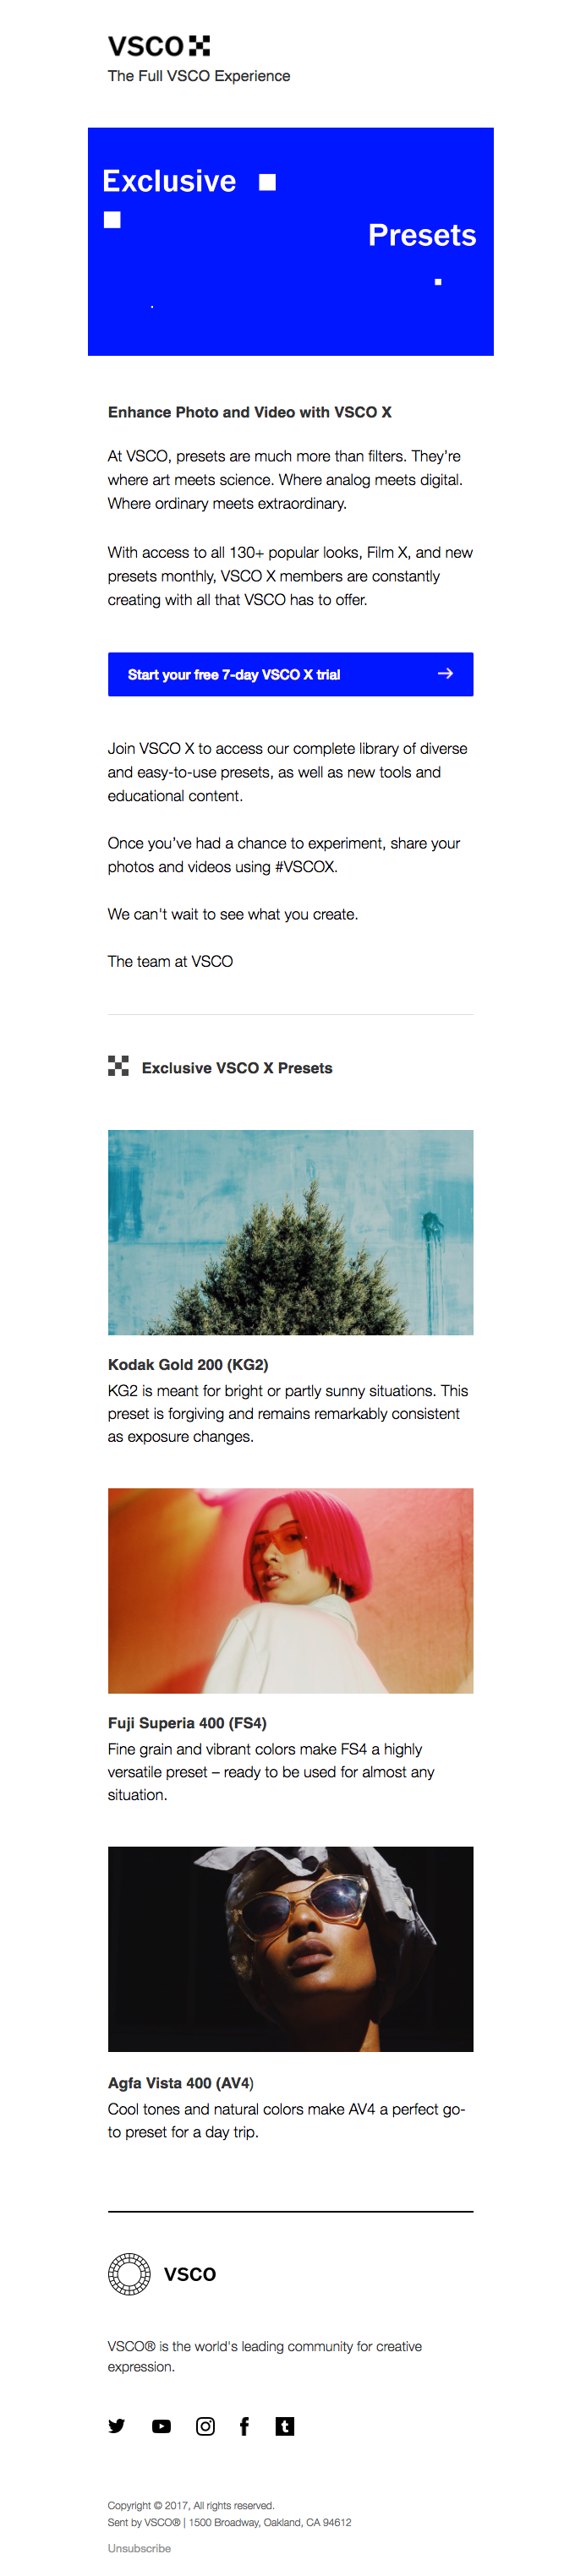 Exclusive VSCO Presets | Really Good Emails